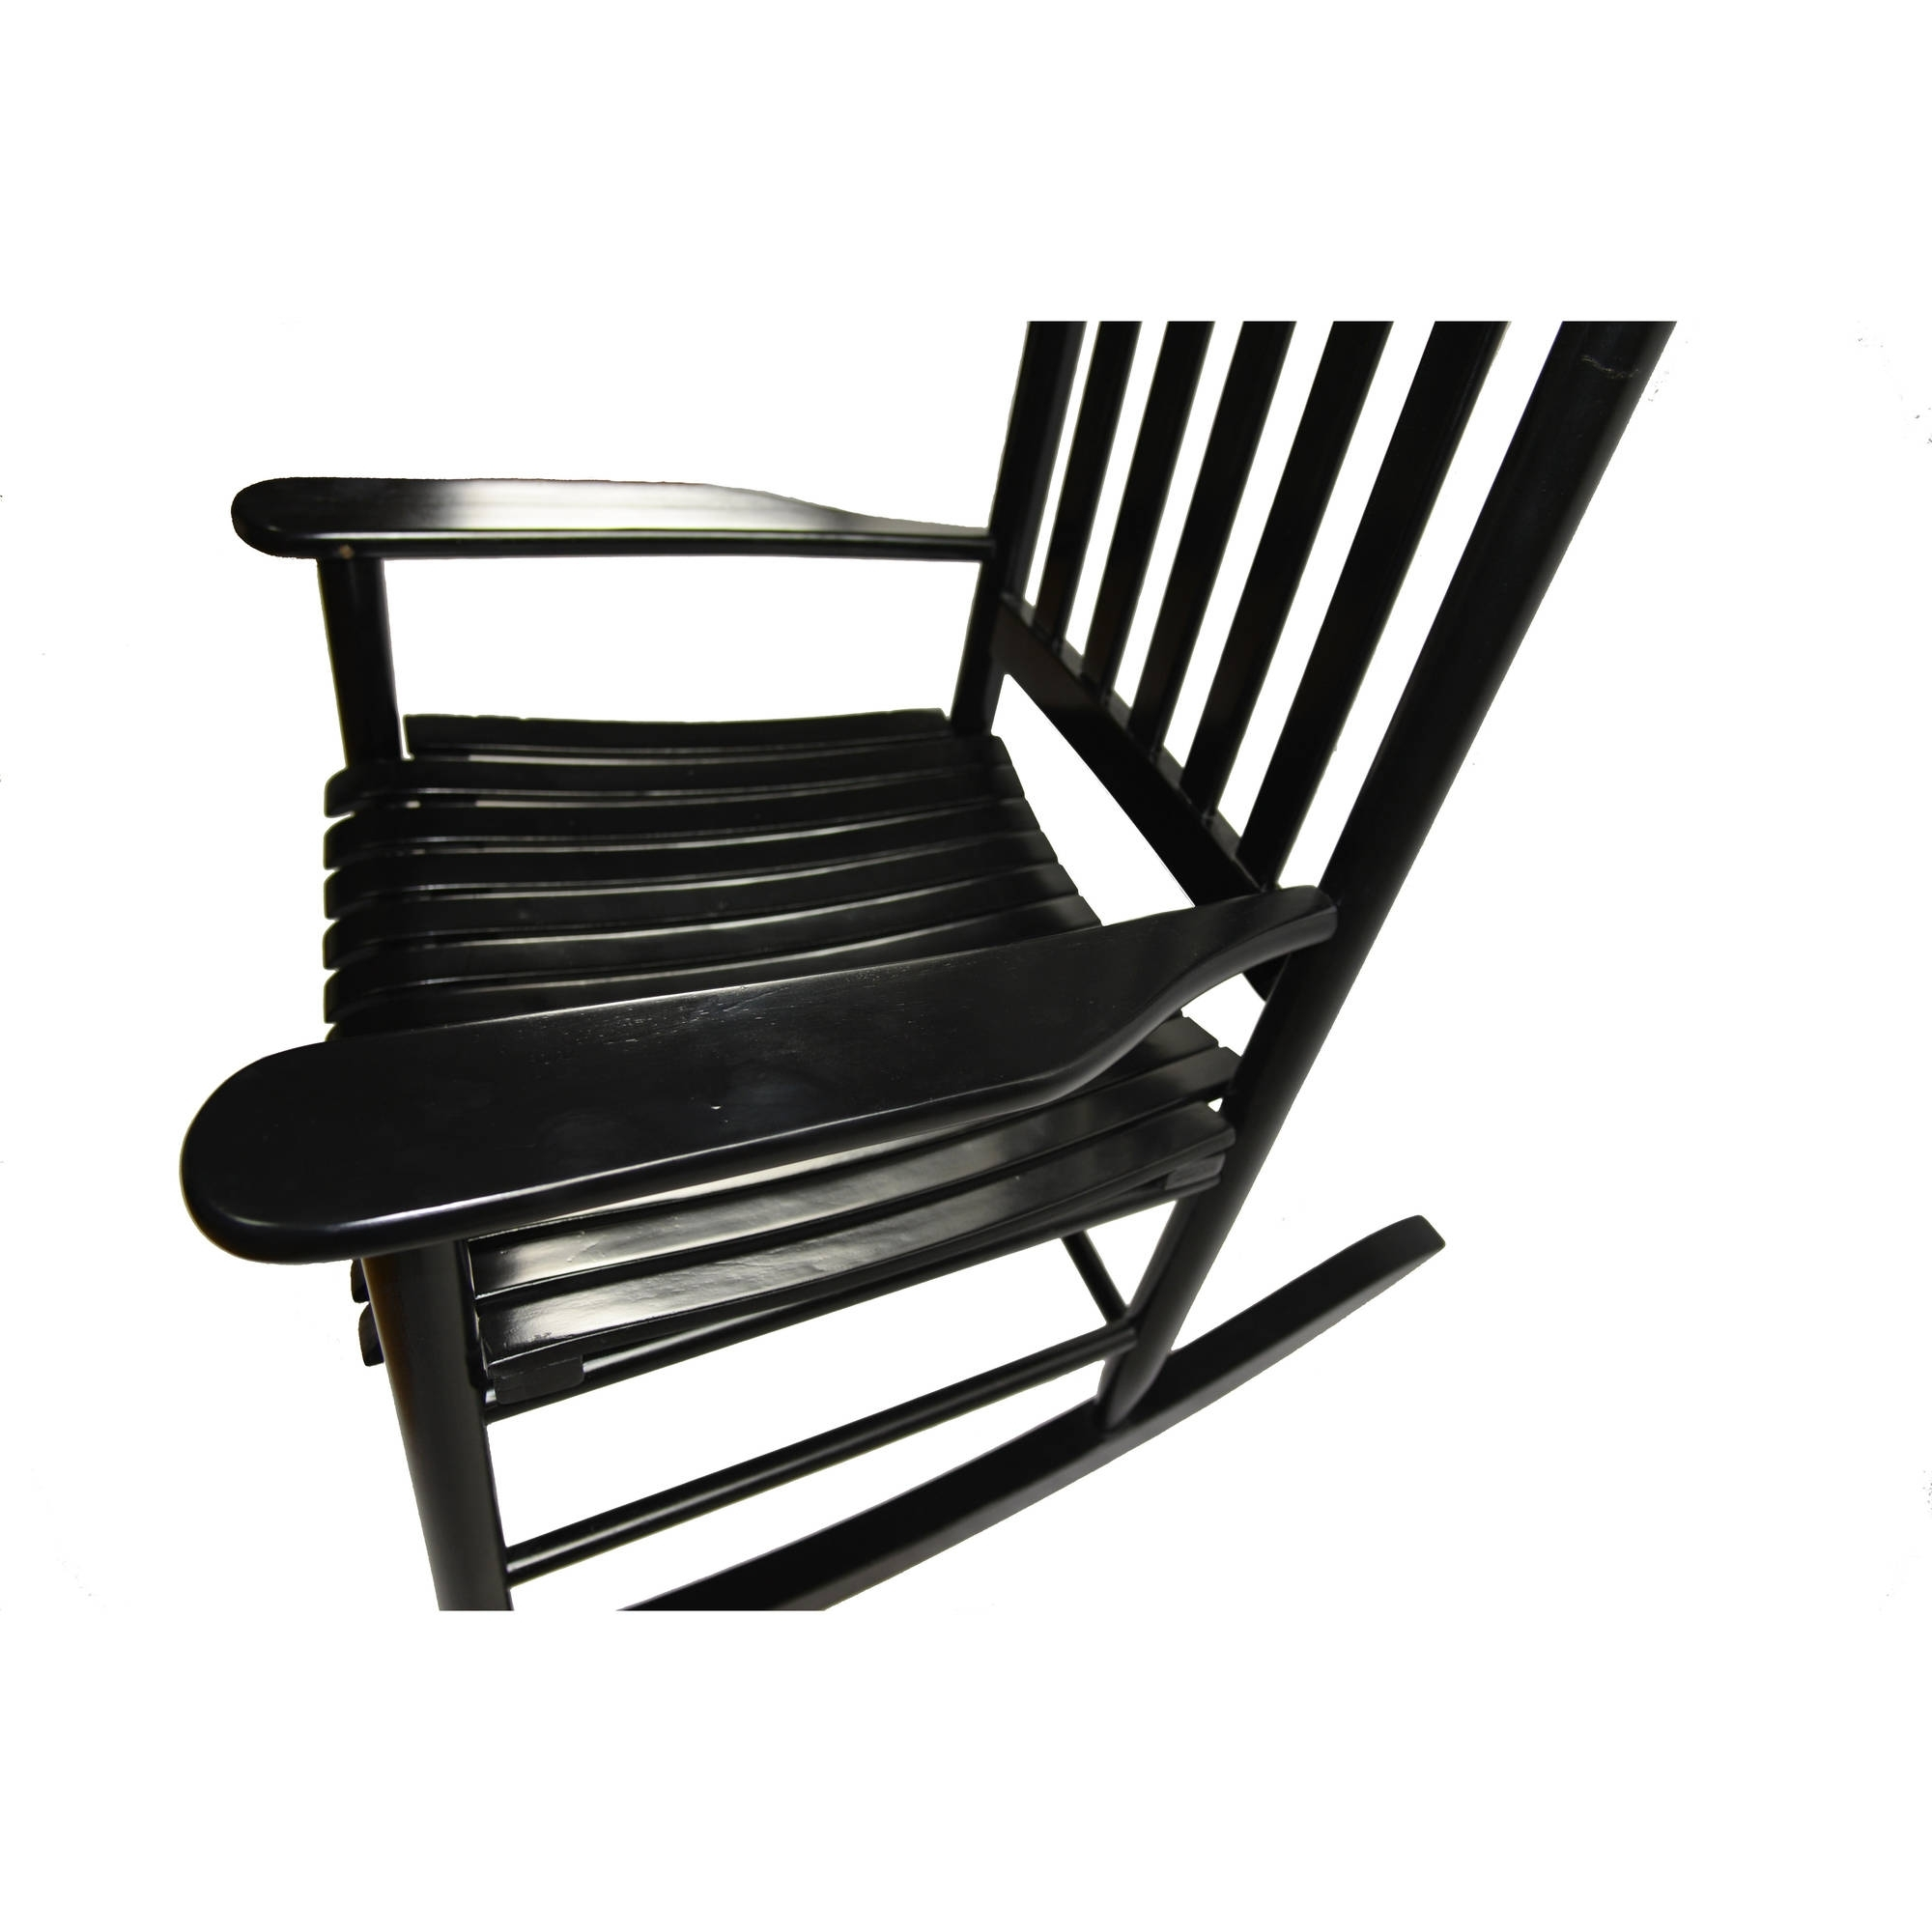 Well Known Mainstays Outdoor Wood Rocking Chair – Walmart Pertaining To Walmart Rocking Chairs (View 15 of 20)